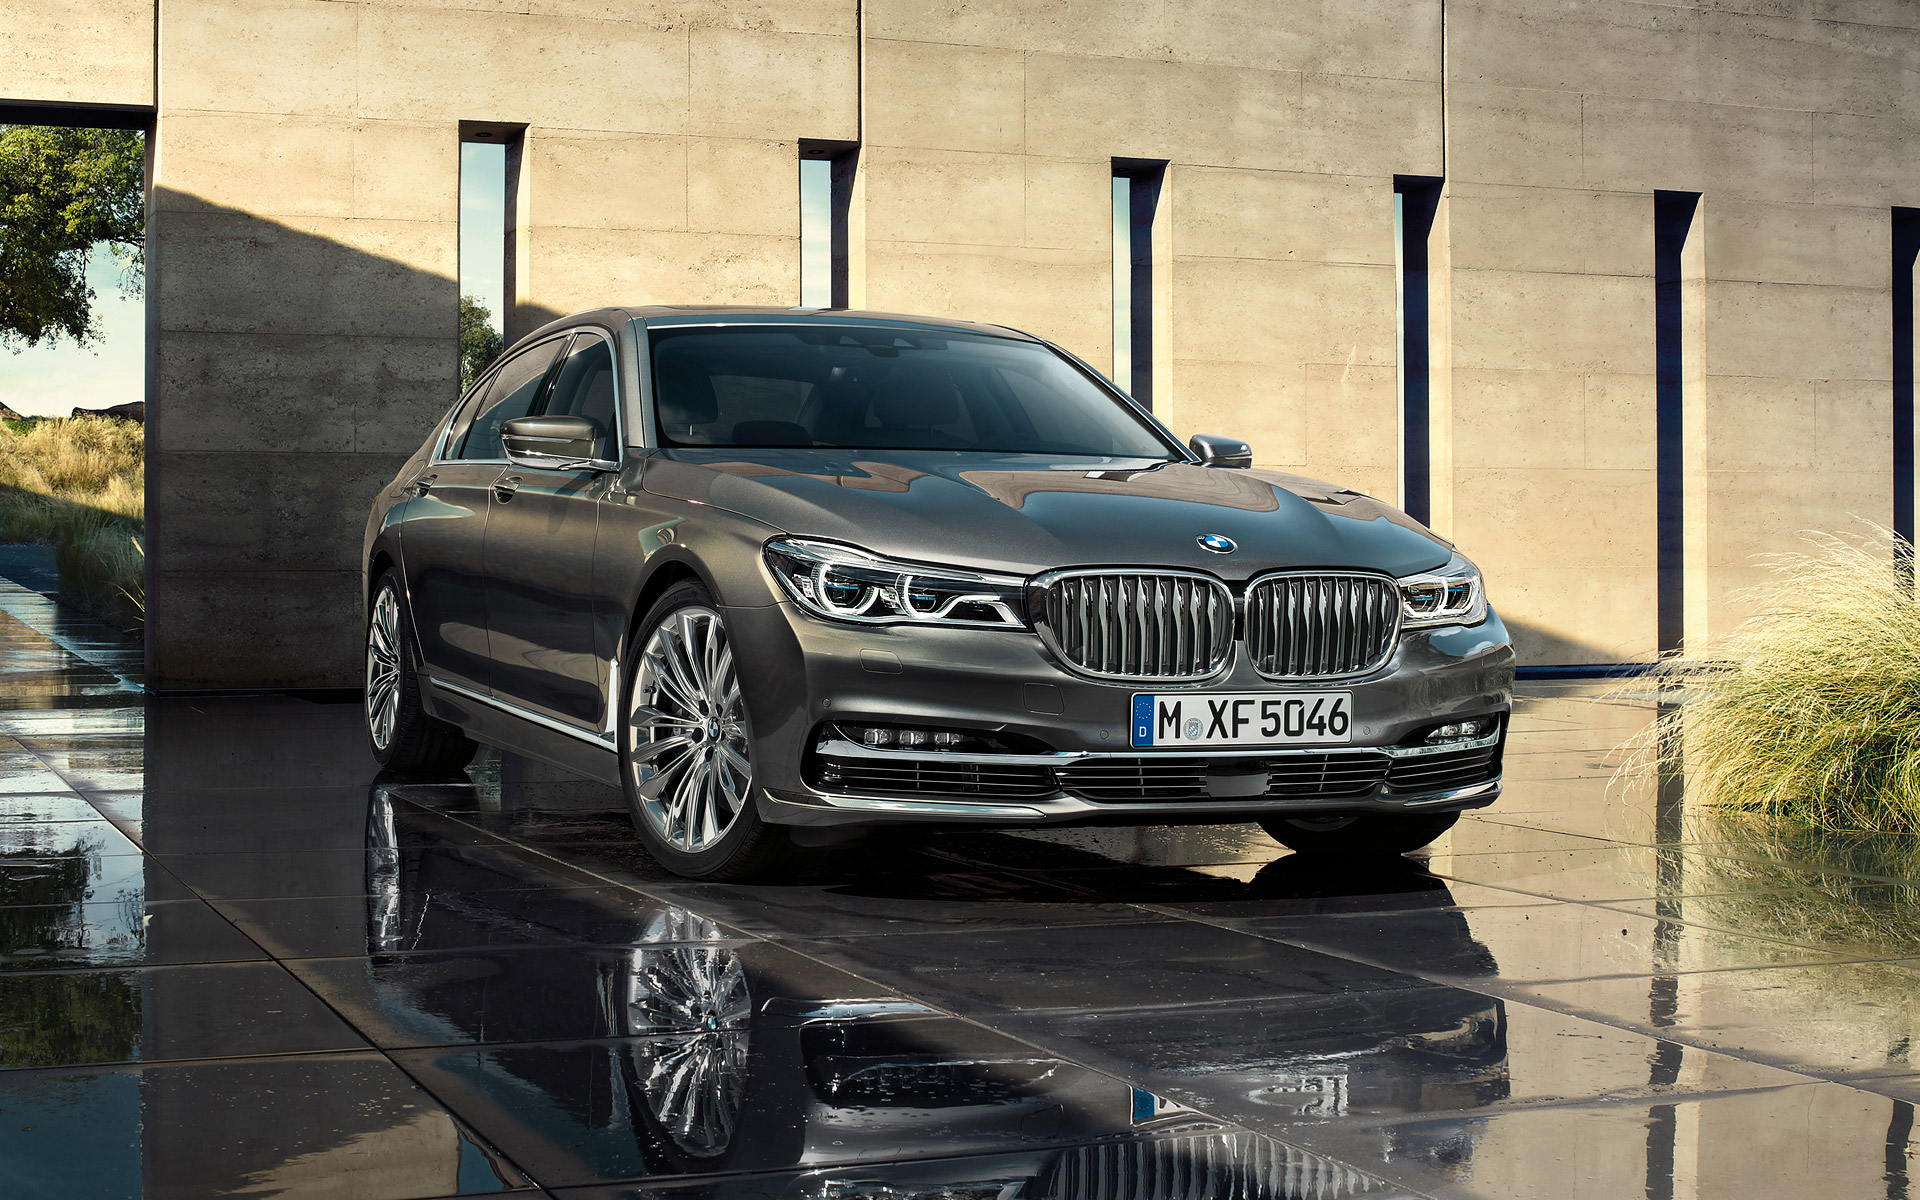 Bmw 7 Series 2016 Hd Wallpapers Free Download